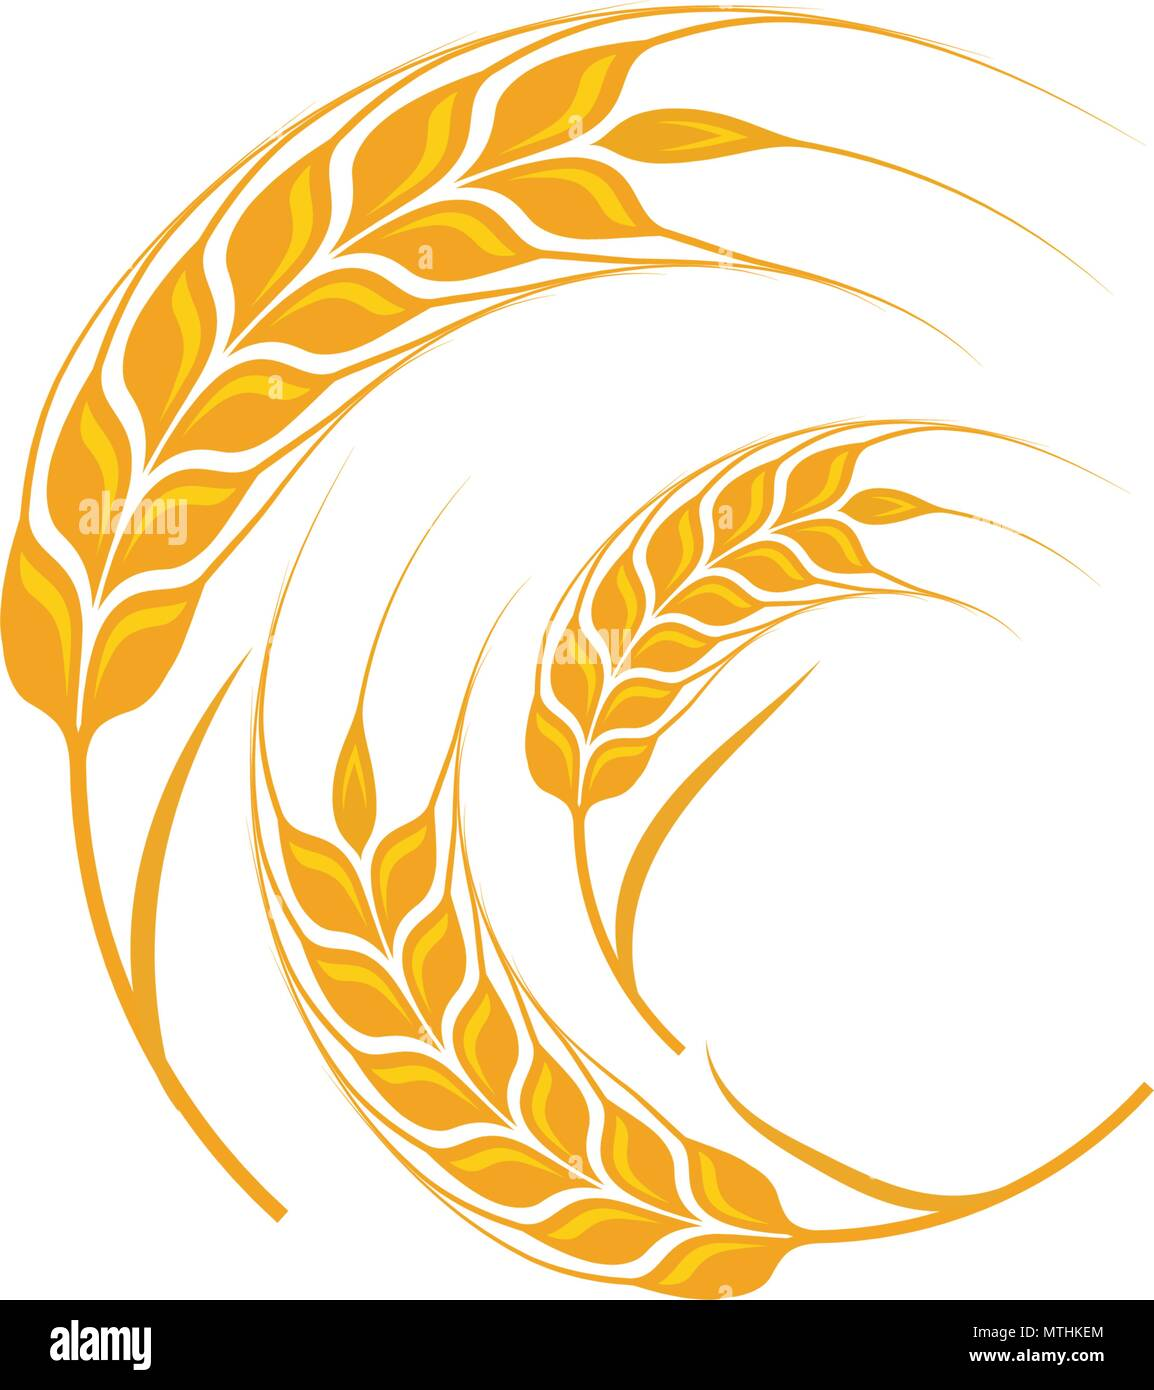 Agriculture wheat Template vector icon design illustration - Stock Vector